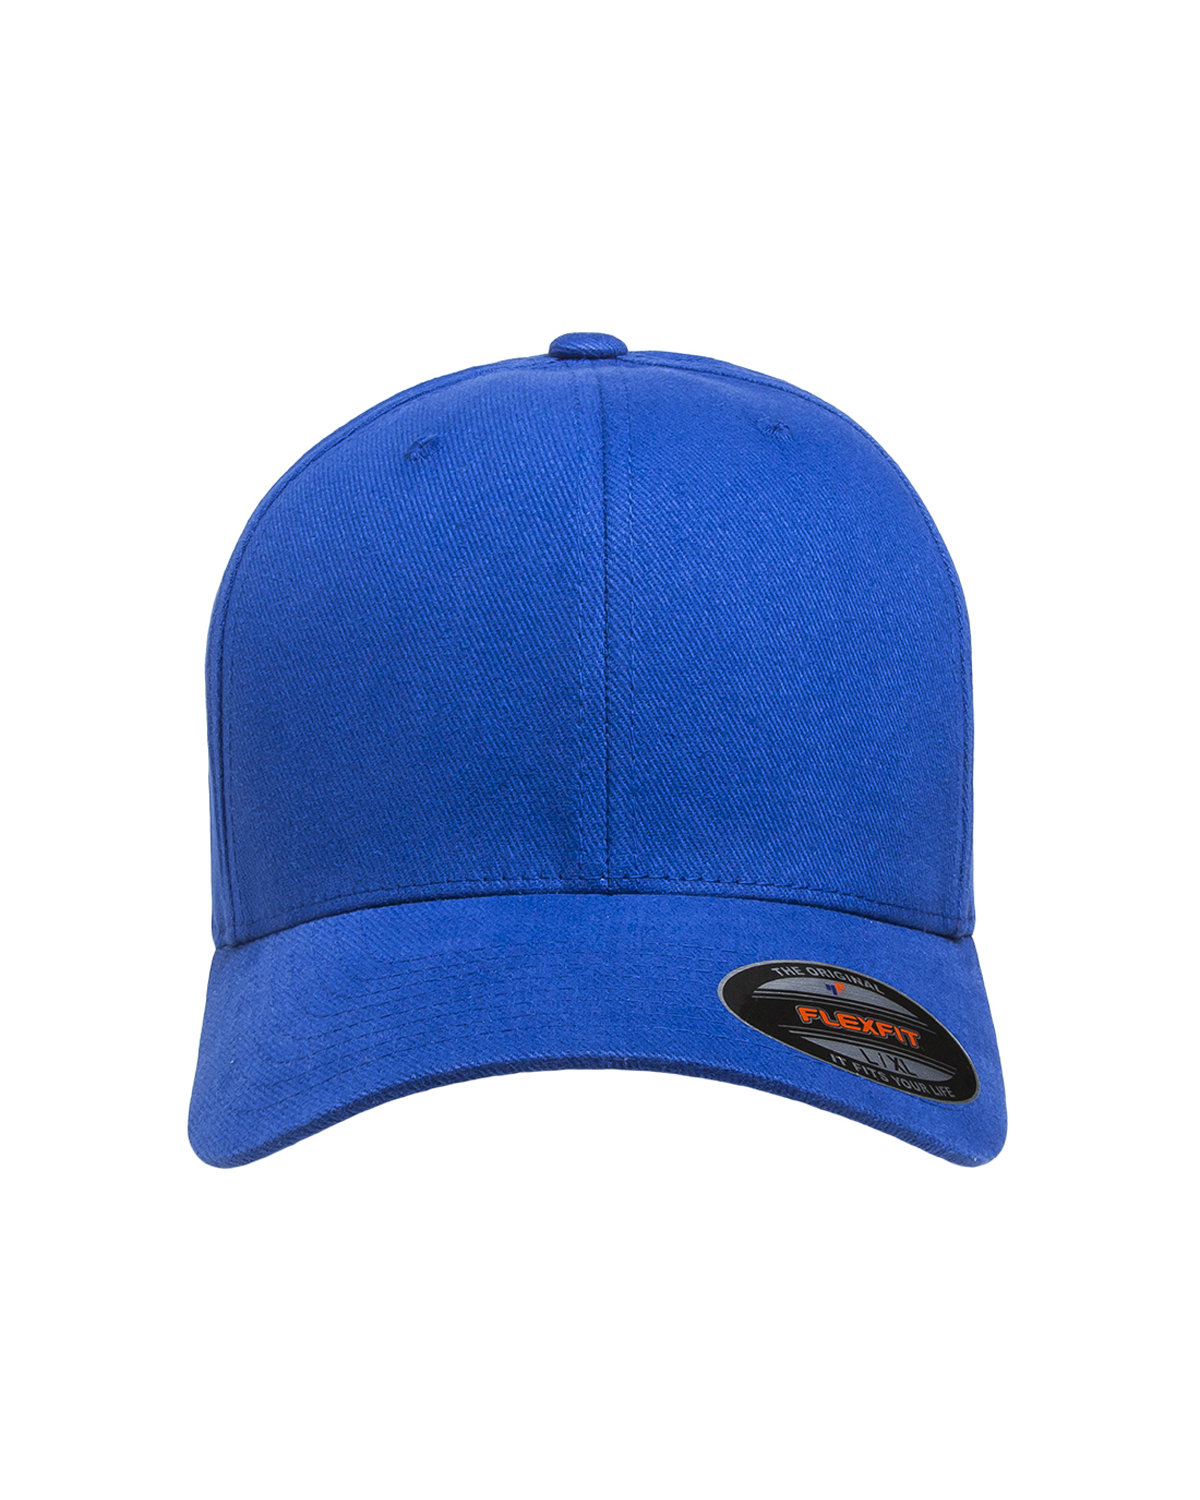 Flexfit Adult Brushed Twill Cap ROYAL